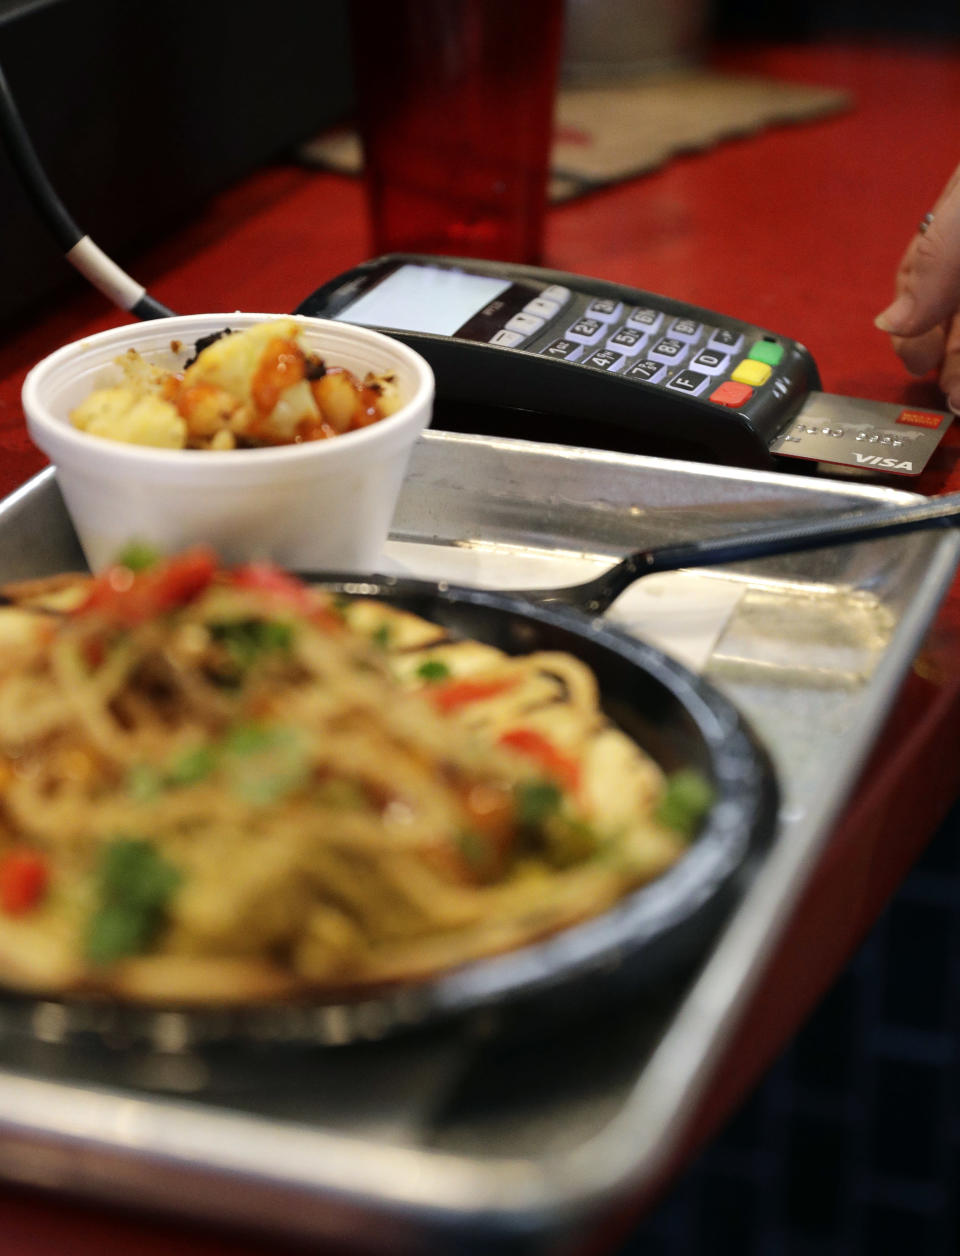 FILE - In this April 10, 2018, file photo, a customers uses a credit card machine to pay for food at Peli Peli Kitchen in Houston. Owner Thomas Nguyen had a change of heart after transitioning one of his three Peli Peli South African fine dining restaurants and his Peli Peli Kitchen fast casual location to a no-cash policy. (AP Photo/David J. Phillip, File)